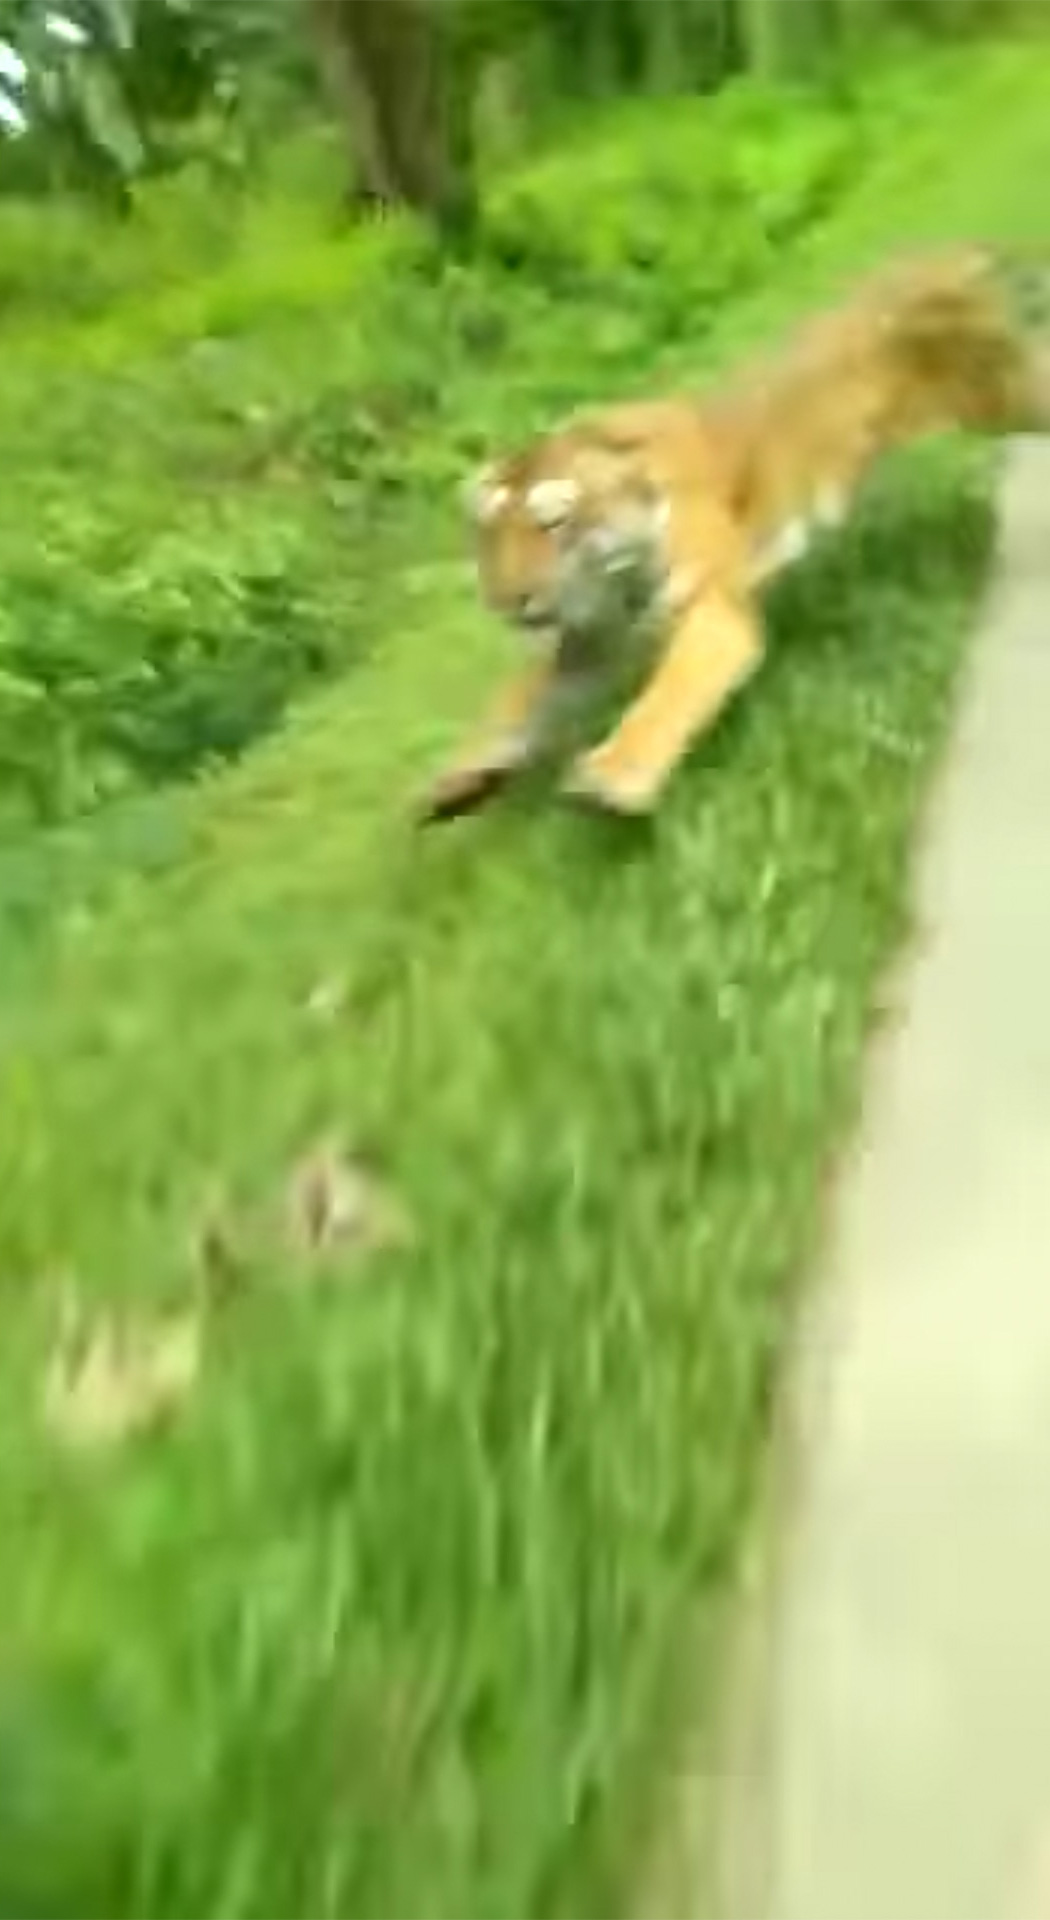 Tiger chases after motorcycle